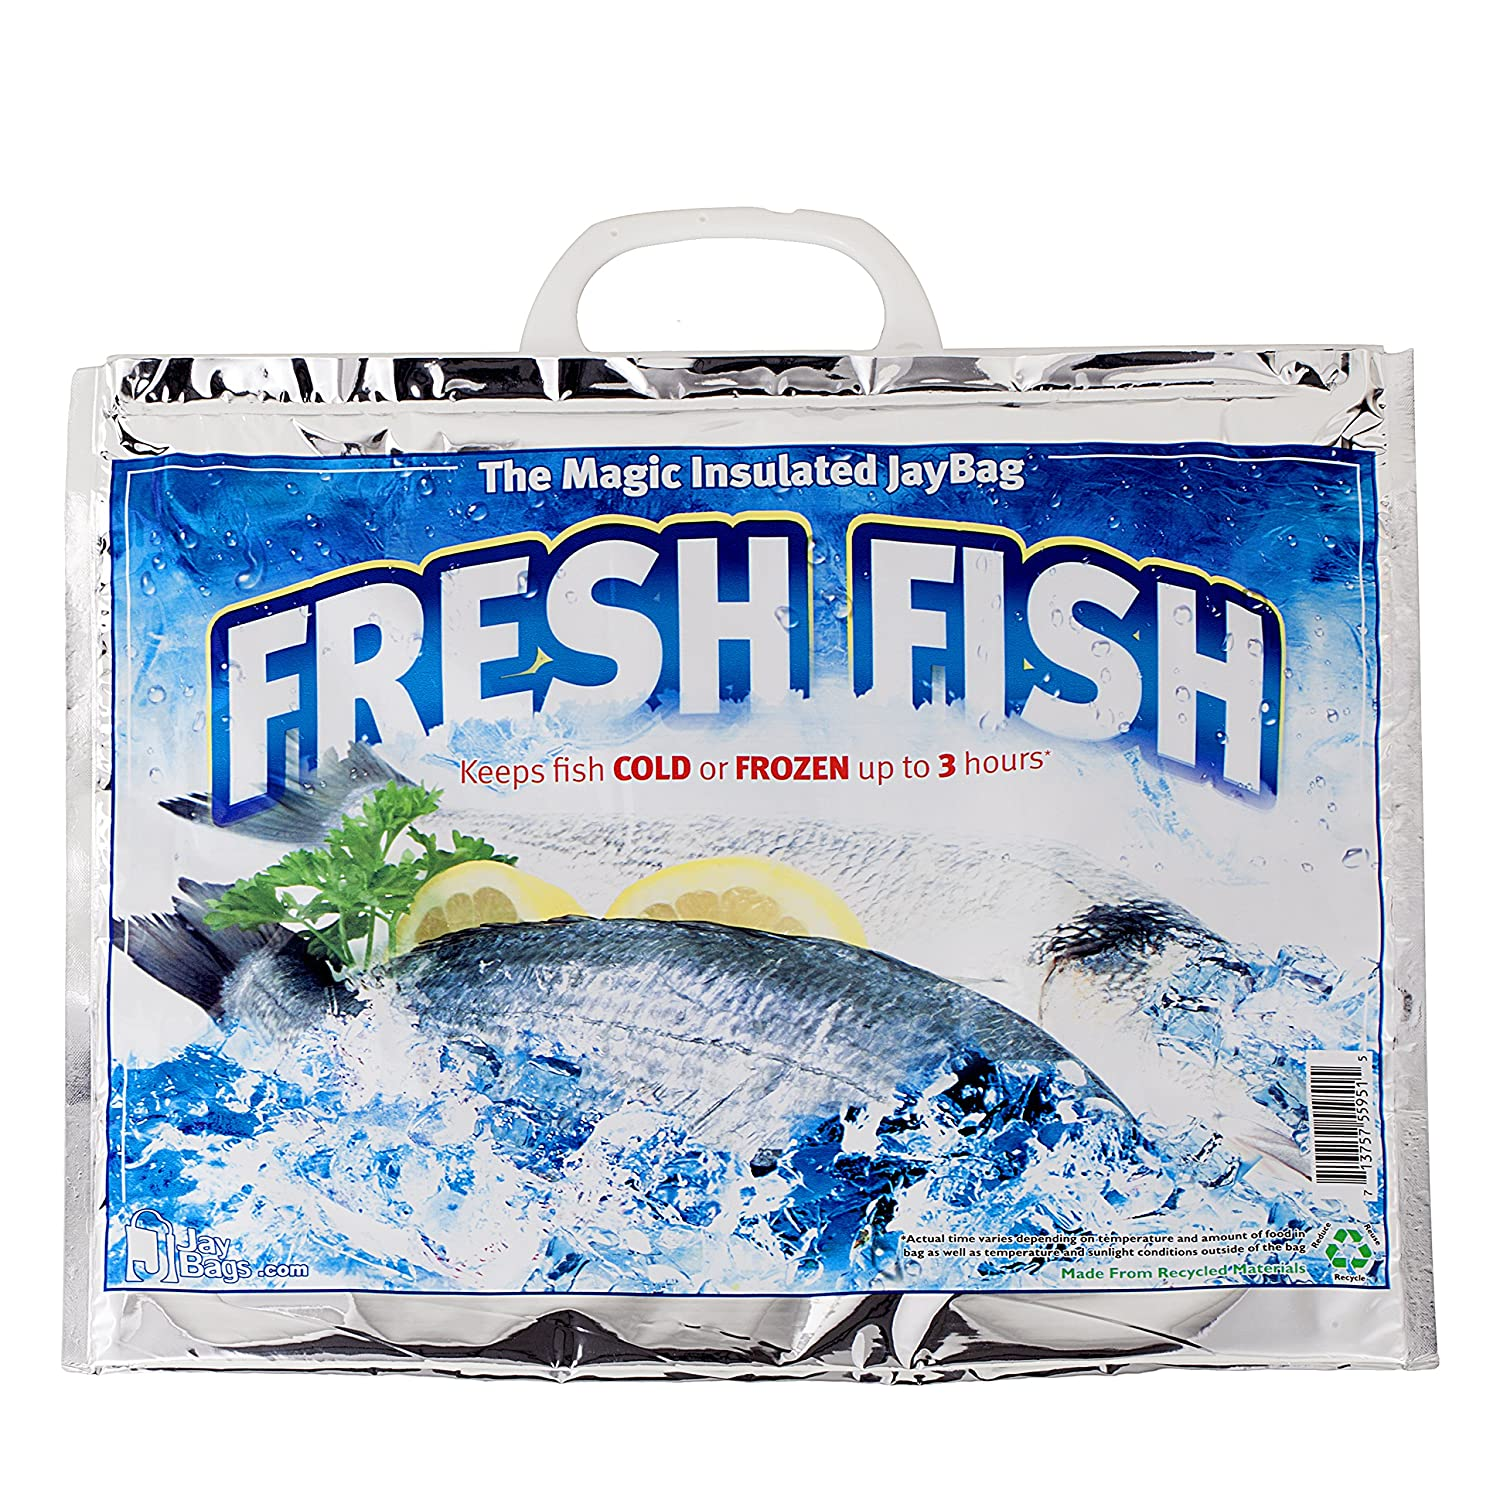 Keeps Fish Cold or Frozen up to 3 Hours Jay Bags FS-232 Small Insulated Grocery Bag